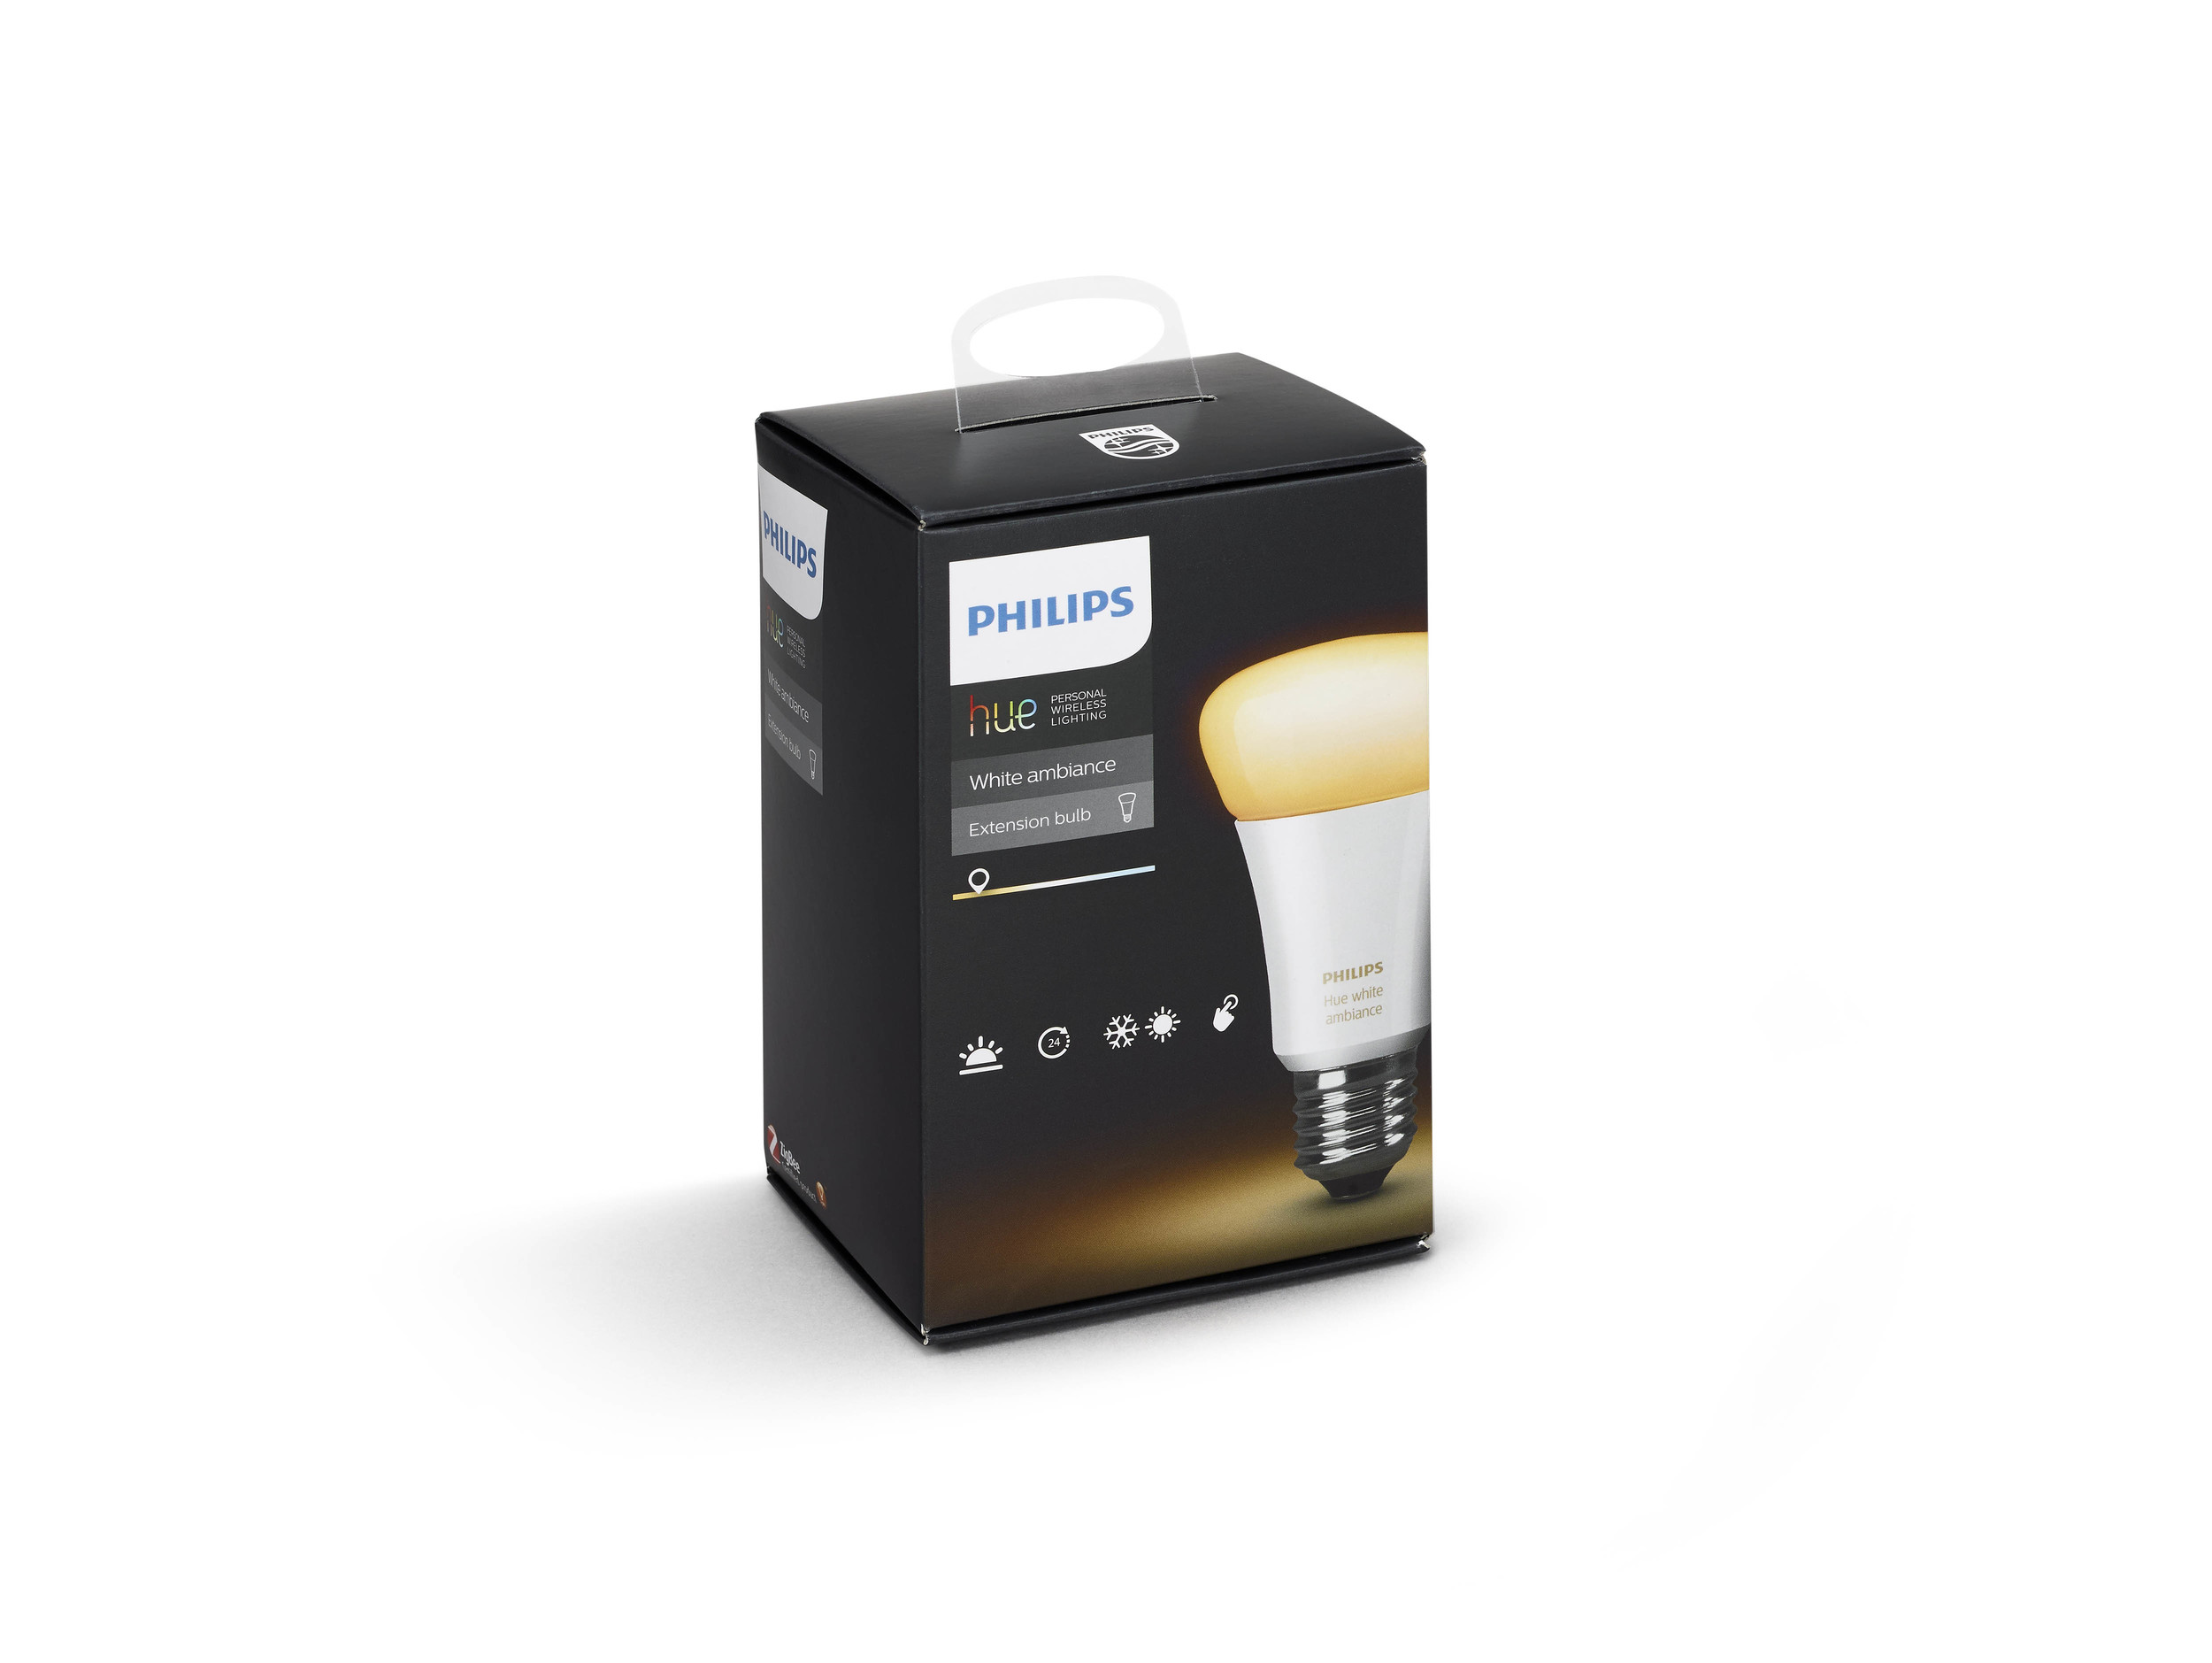 Spare lamp - PHOTOGRAPH COURTESY OF PHILIPS LIGHTING